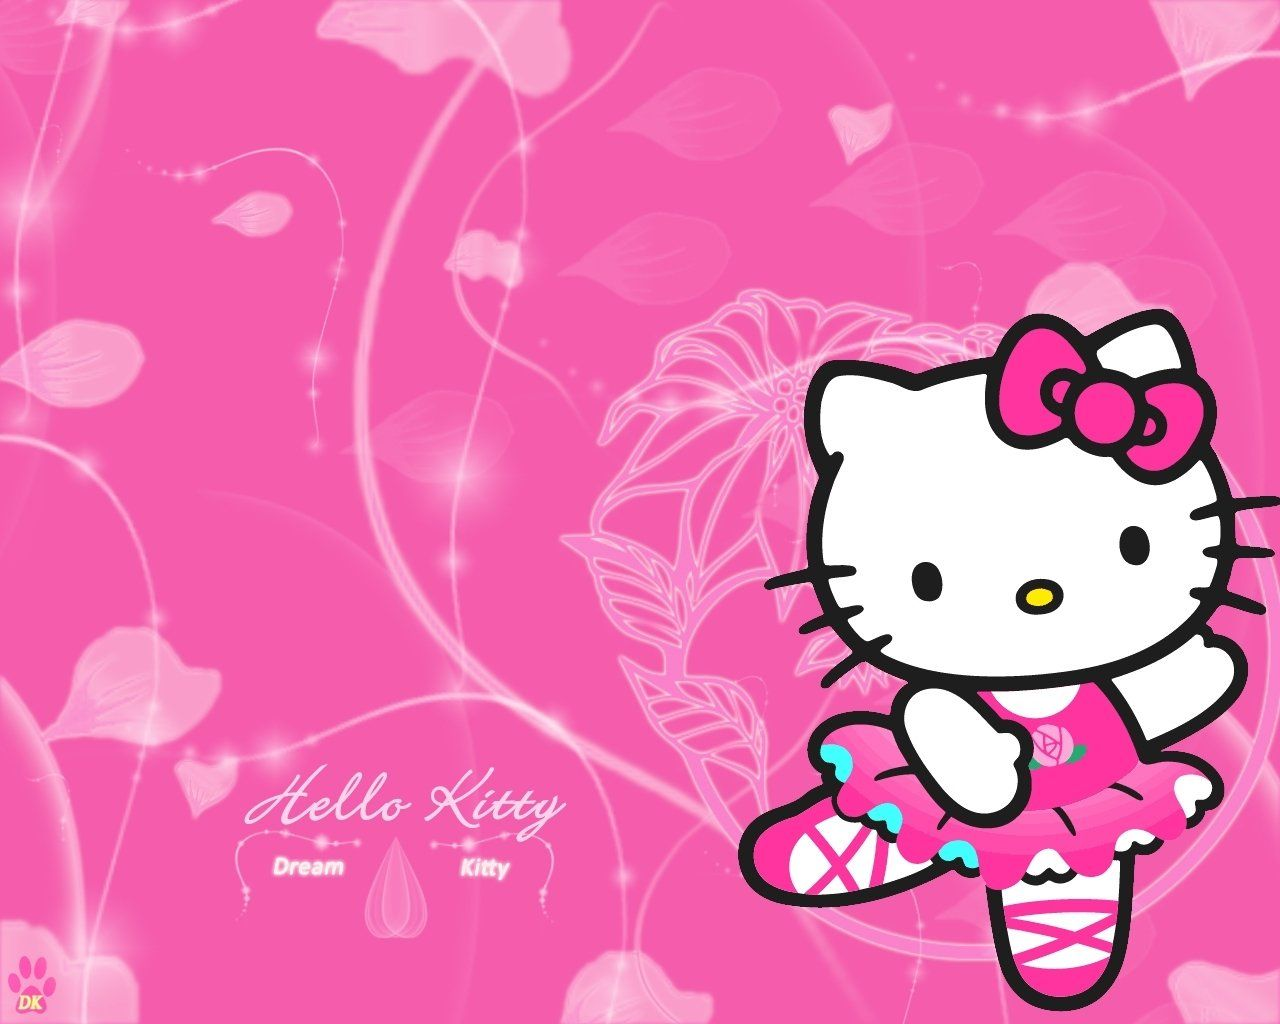 Hello Kitty Hd Wallpapers Backgrounds Wallpaper In 2019